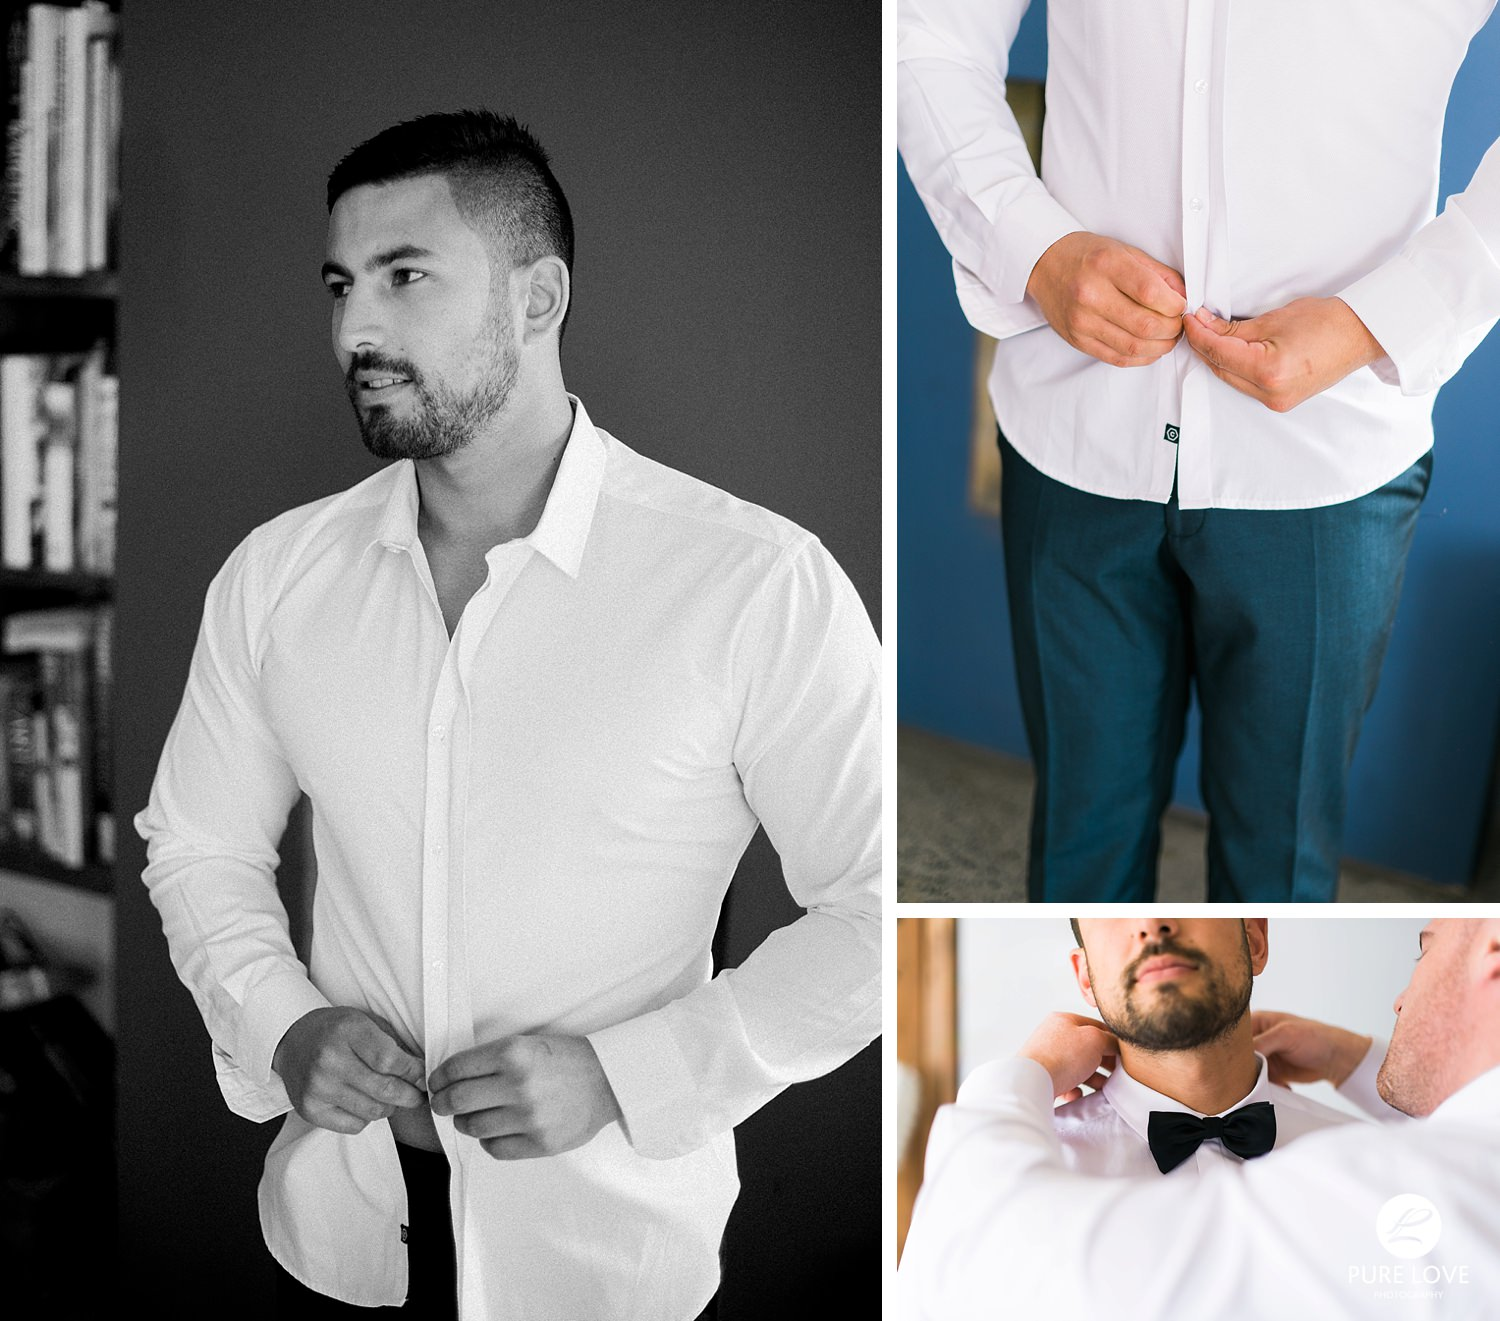 groom is getting ready. buttoning his shirt